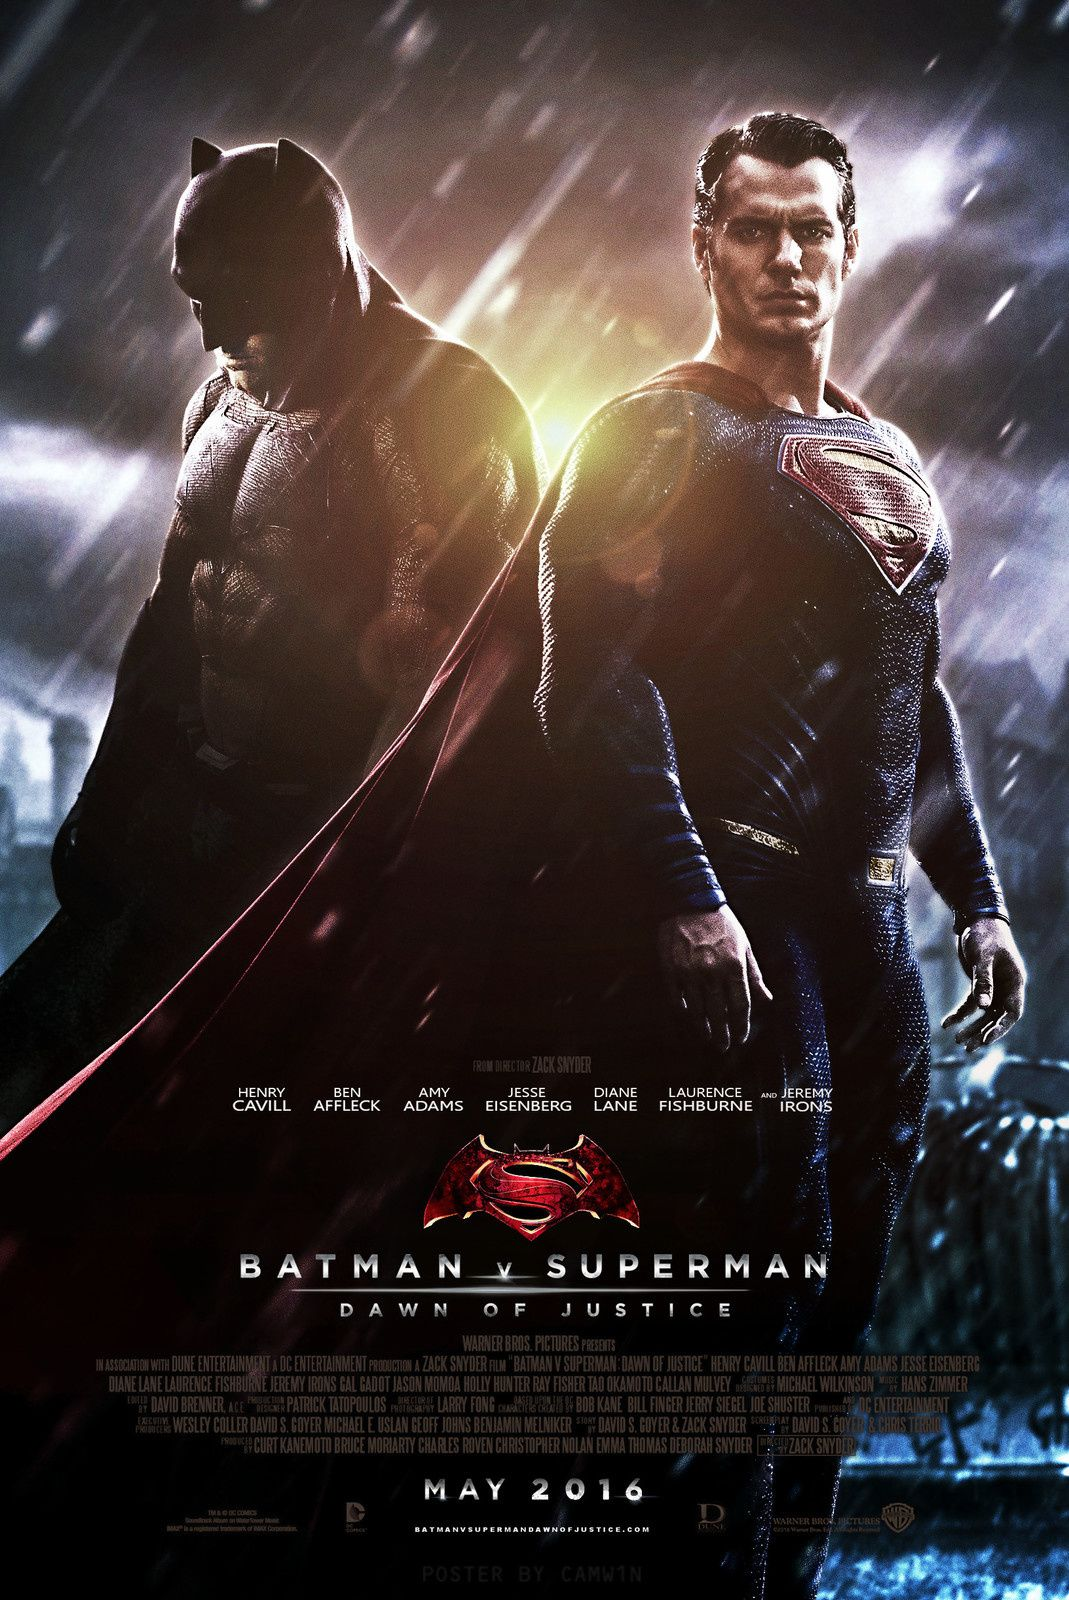 Batman Vs Superman (****)